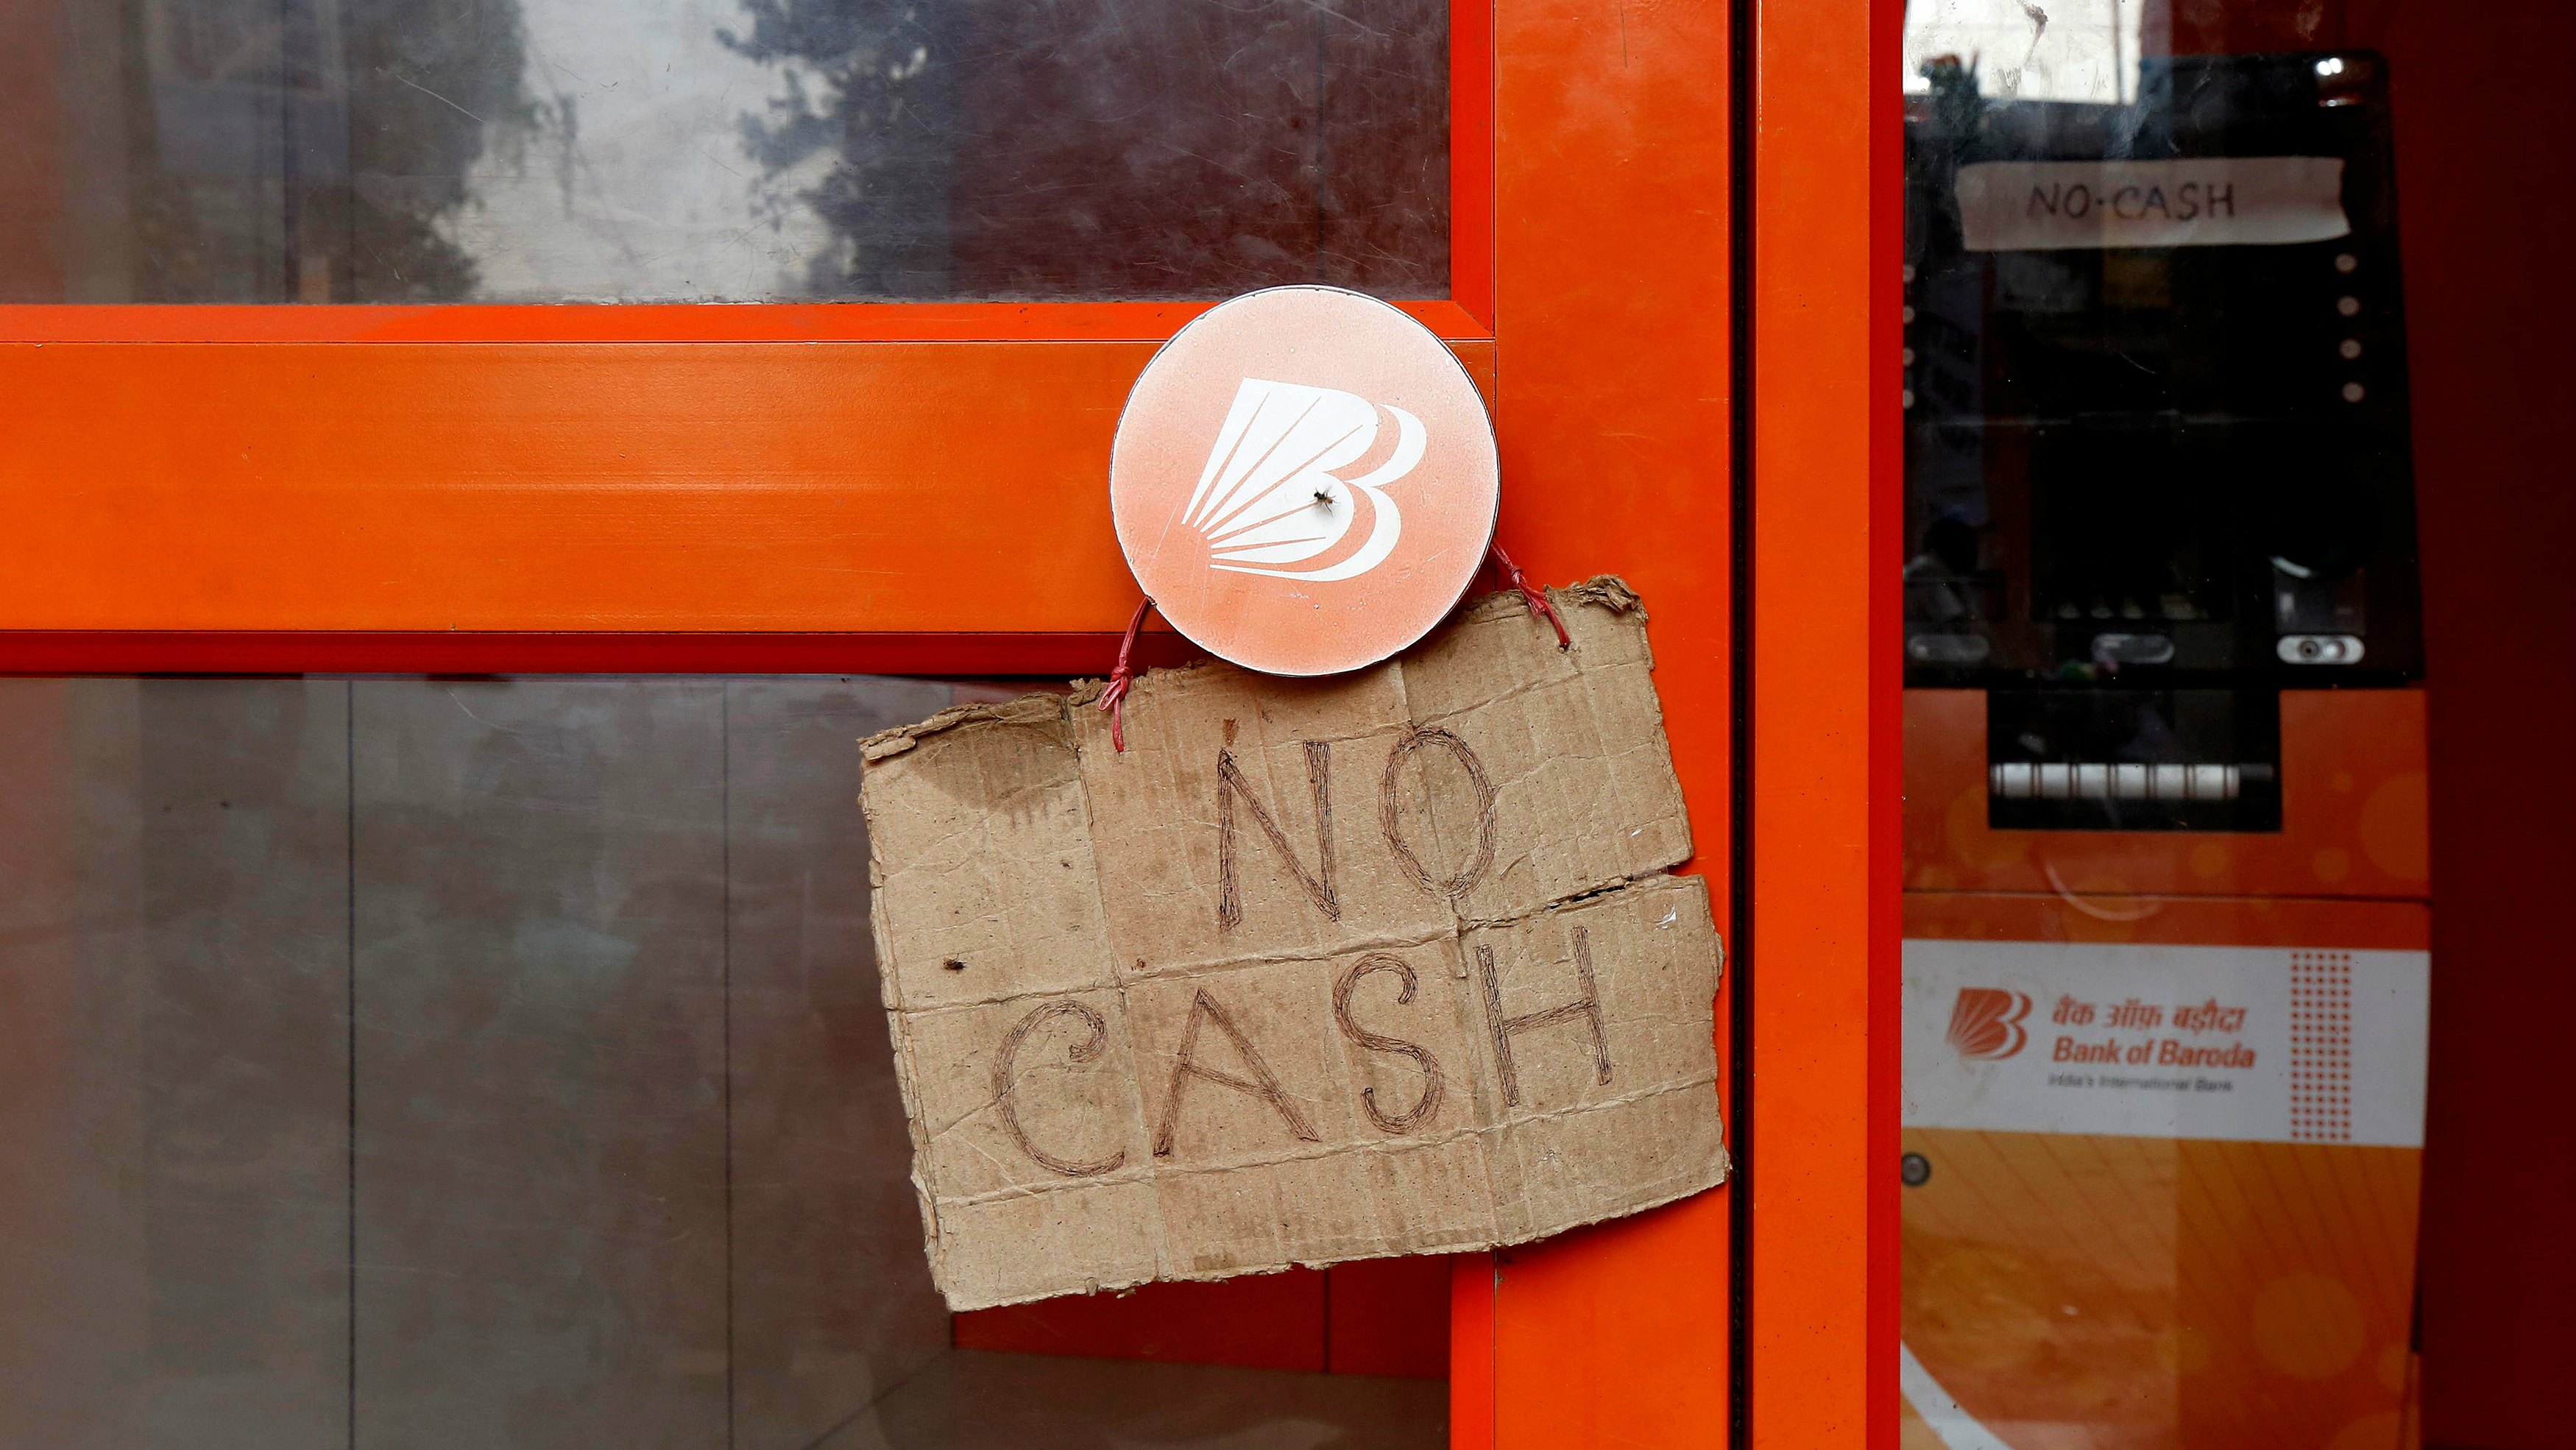 A sign that says no cash in front of an ATM.